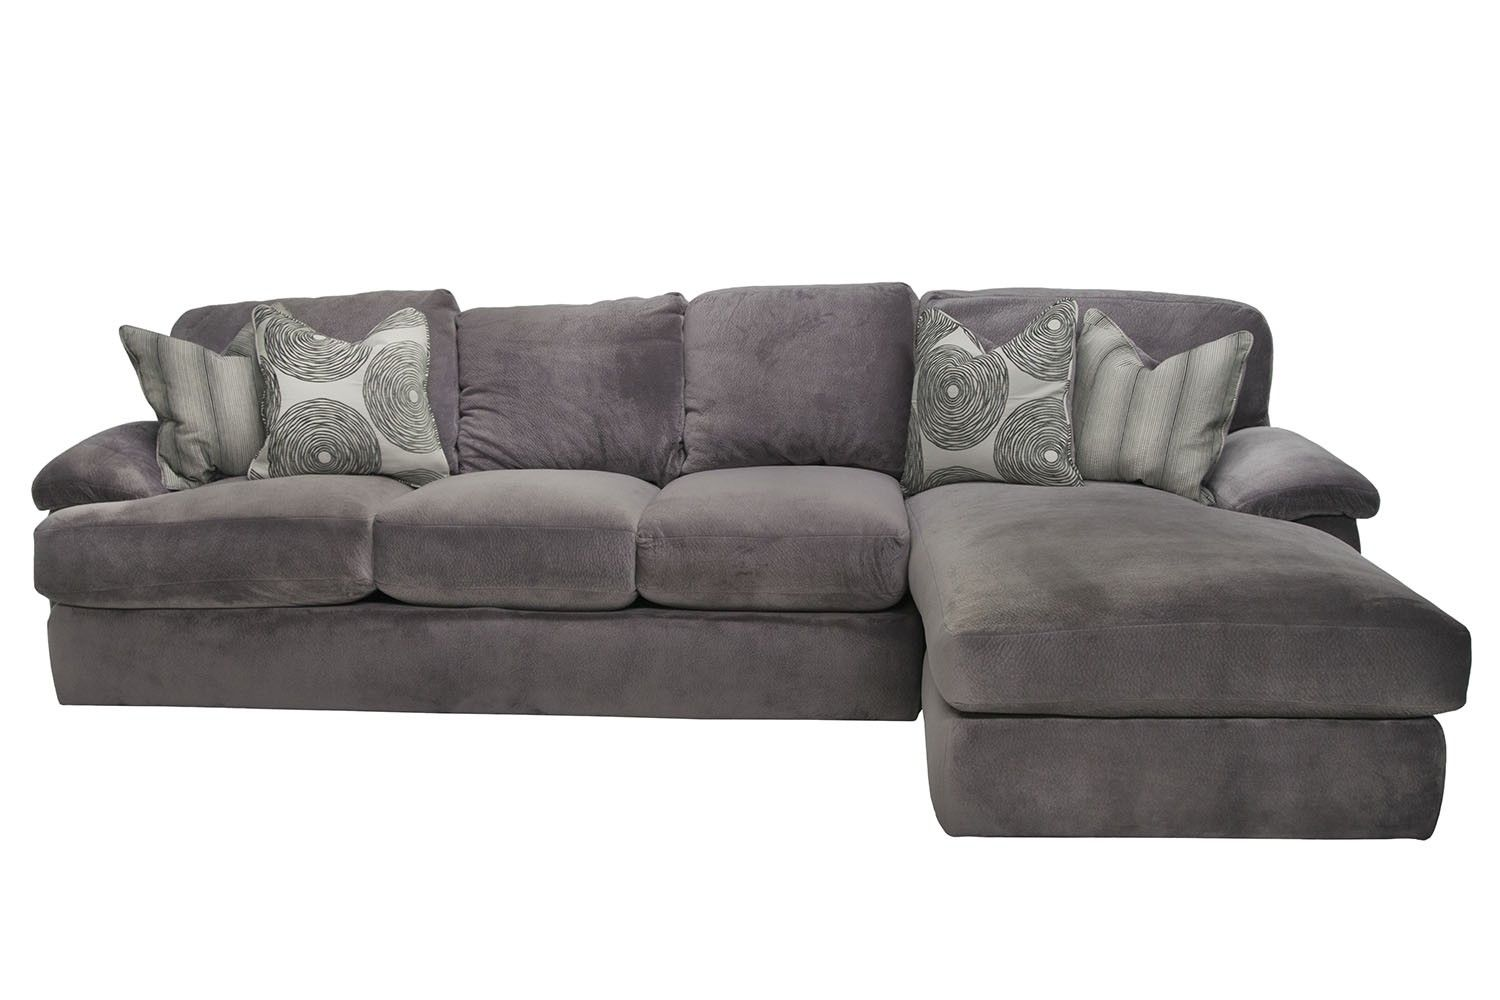 Mor Furniture For Less Key West Right Facing Sofa Sectional In Gray